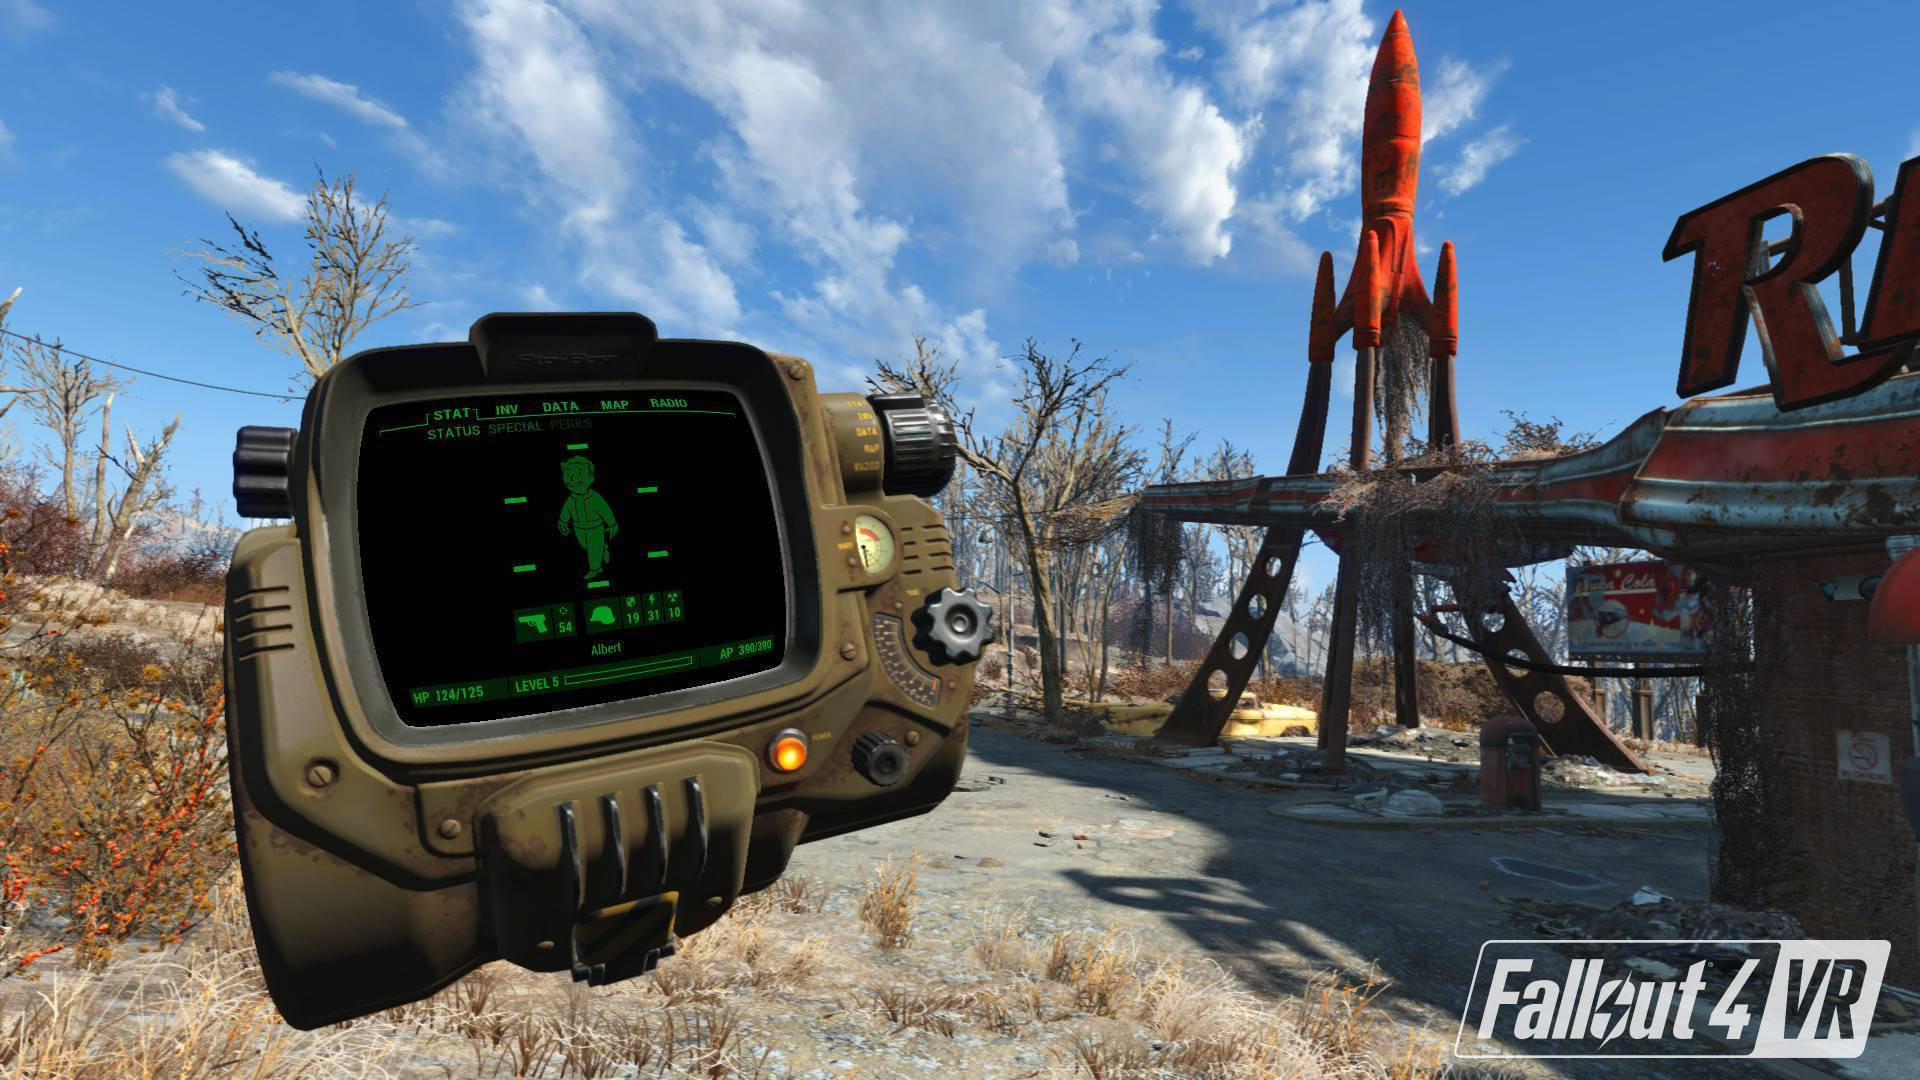 Article title about Fallout 4 VR